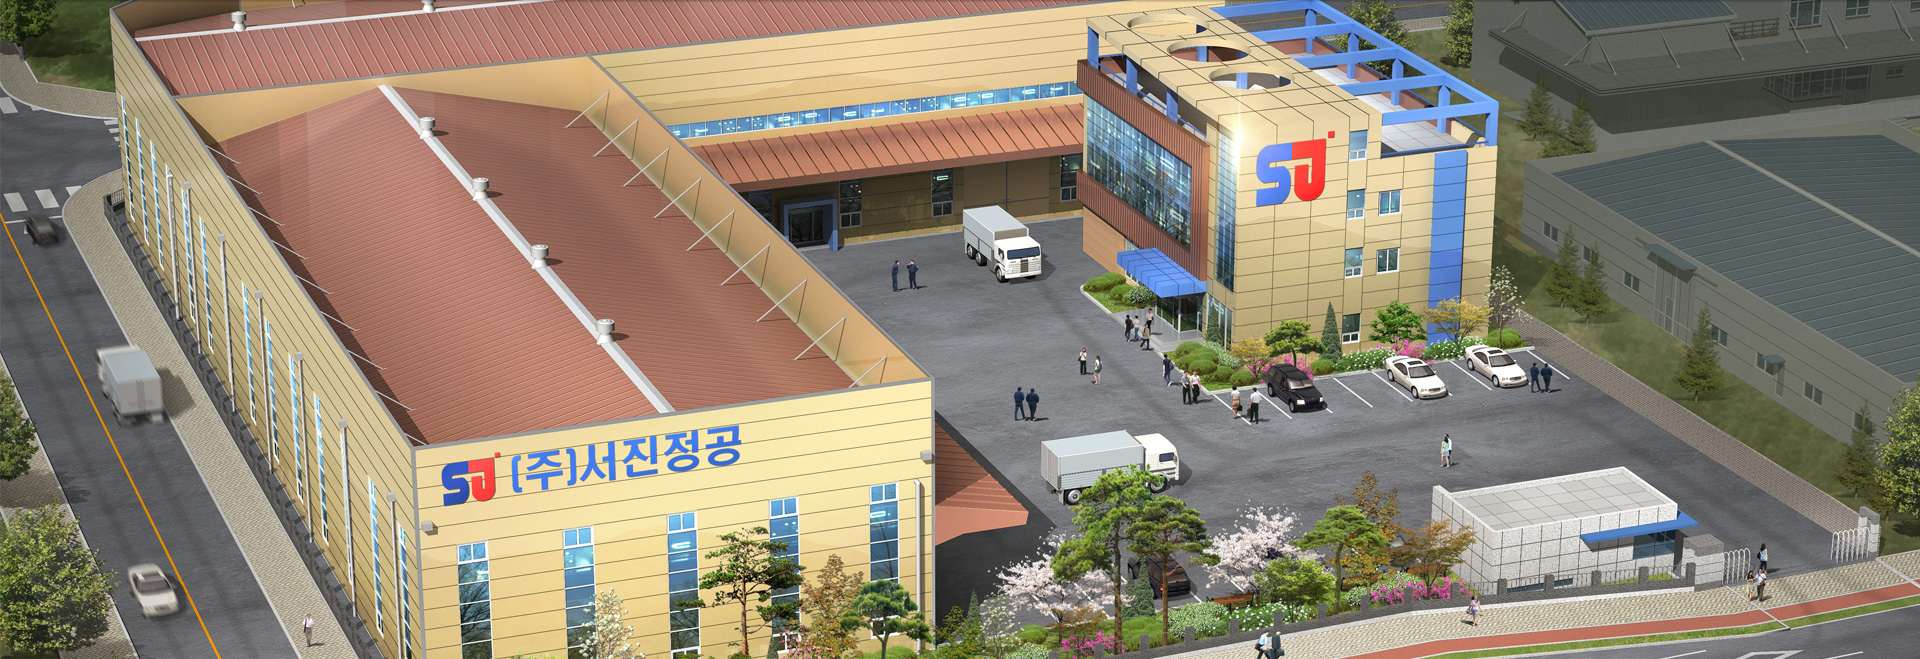 SeoJin Precision Industry Co., Ltd.